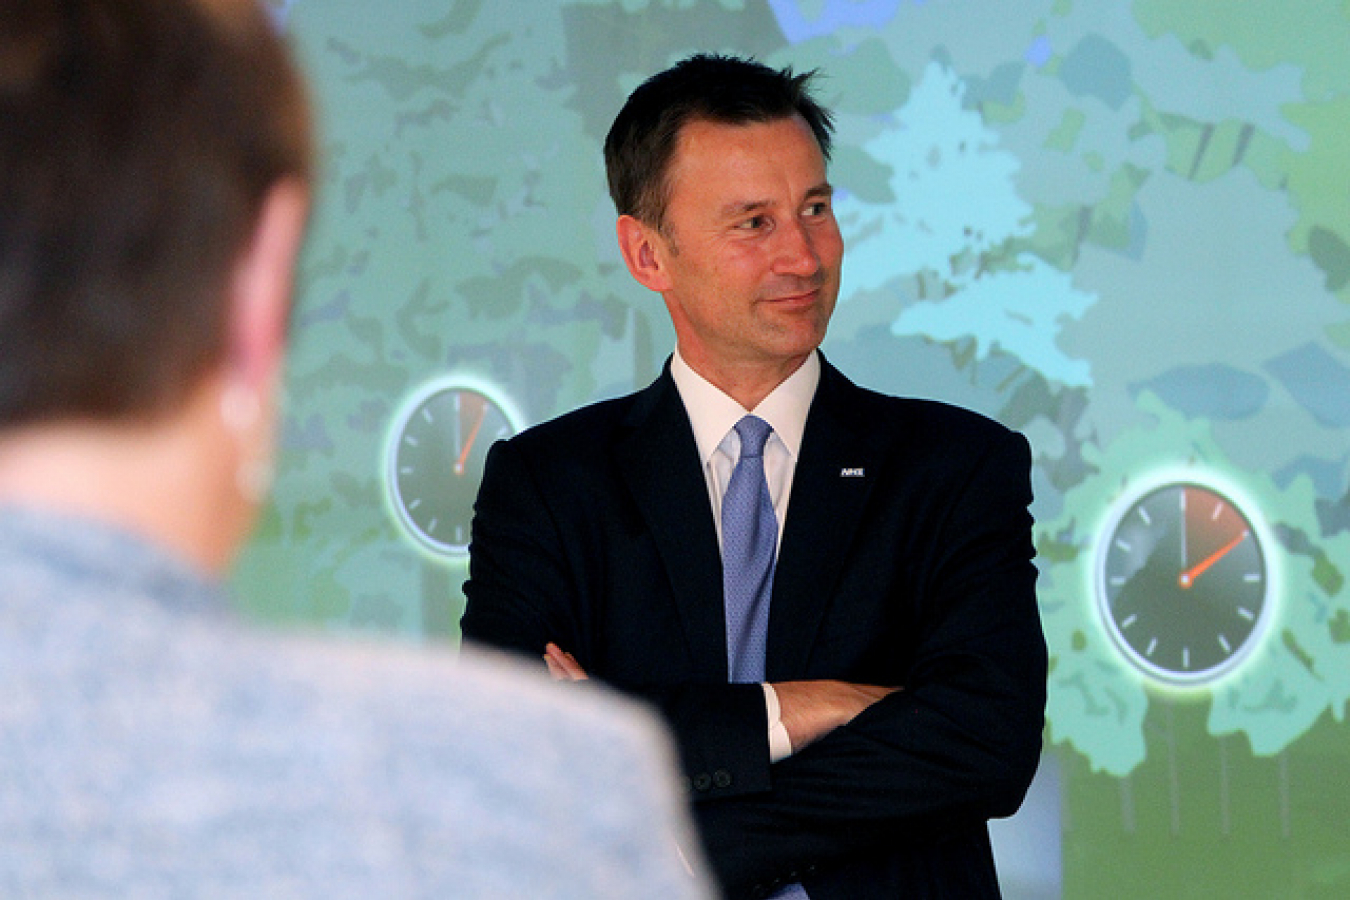 UK Secretary of State for Health Jeremy Hunt and Dr. Mark Davies visit the Center for Total Health 25424